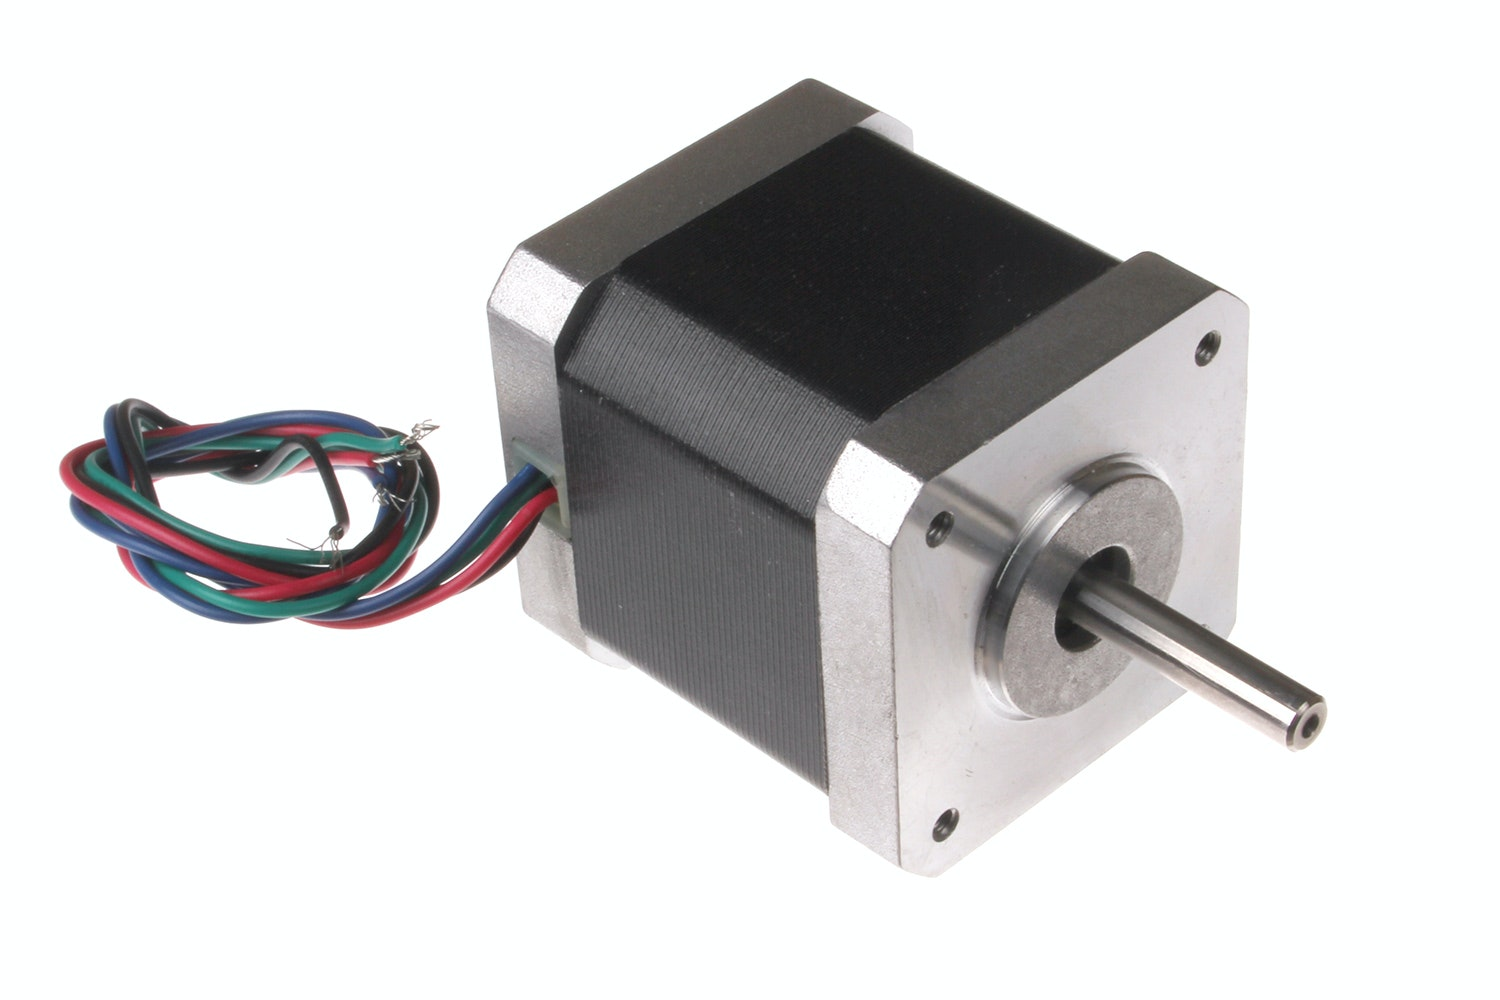 Nema-17 Stepper Motor Five Pack